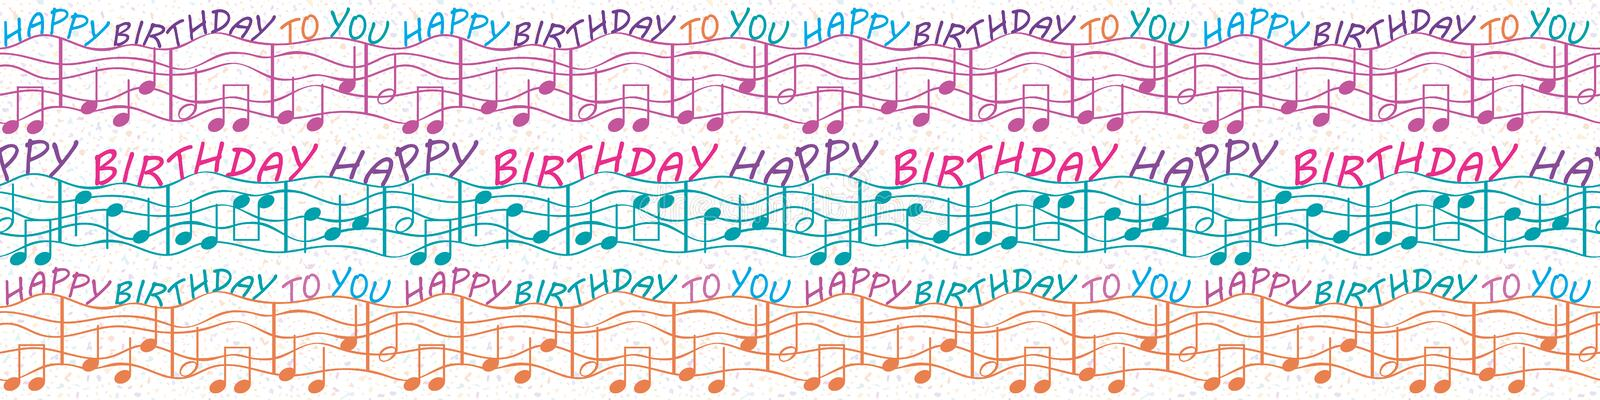 Colorful musical birthday congratulations border with text and musical notes. Seamless vector pattern in purple, blue vector illustration